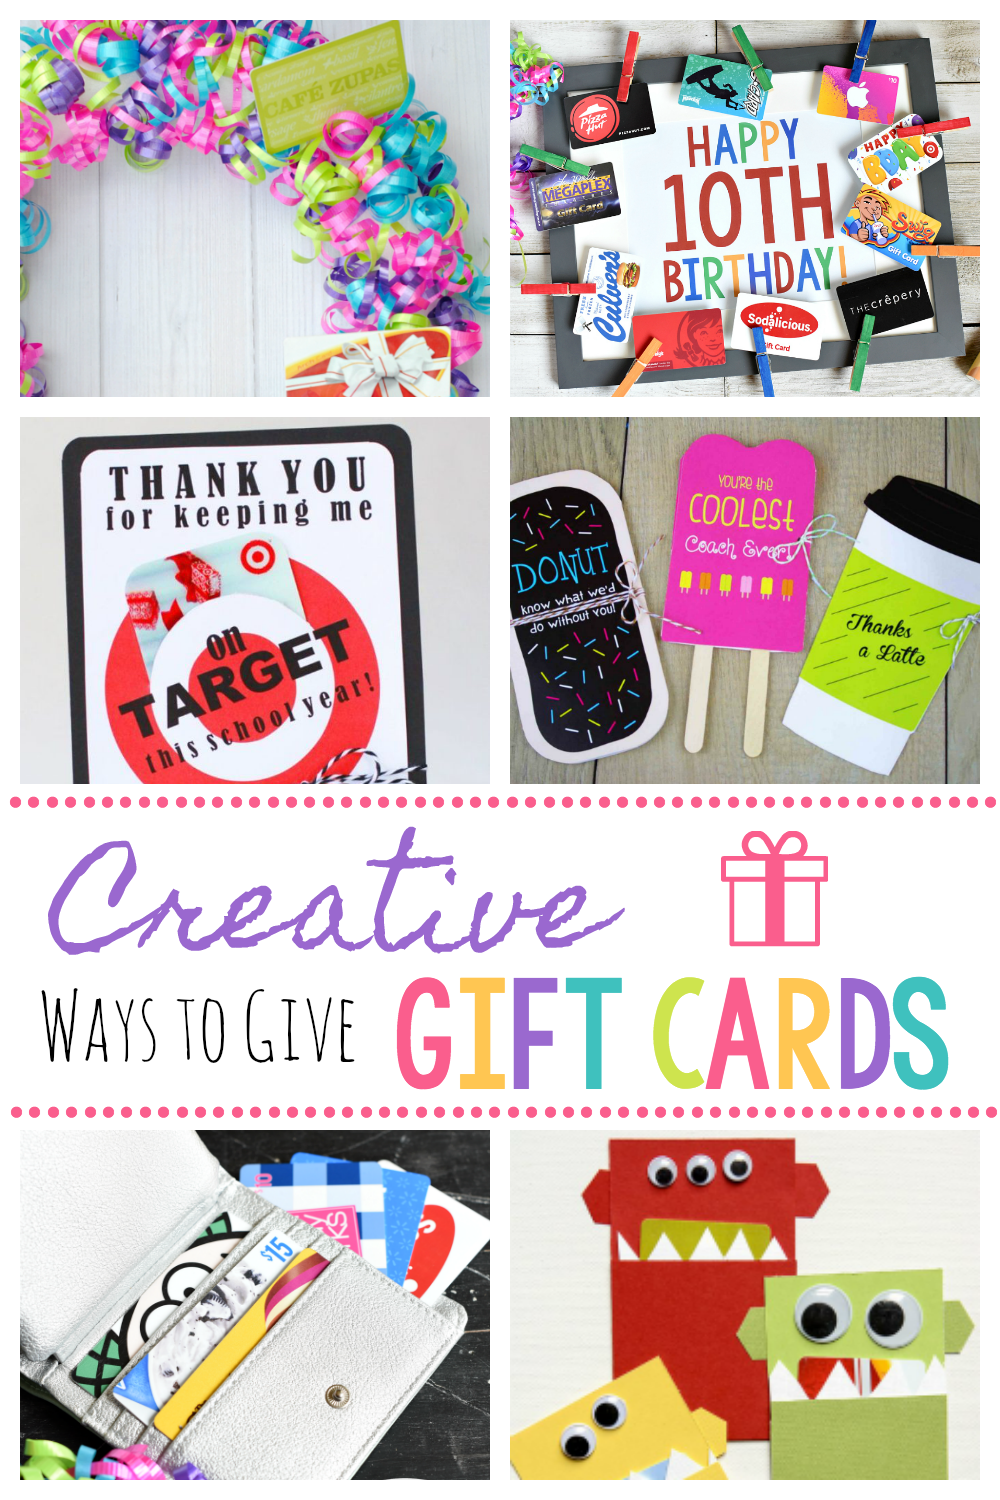 Creative Ways To Give Gift Cards Fun DIY Card Giving Ideas Giftcards